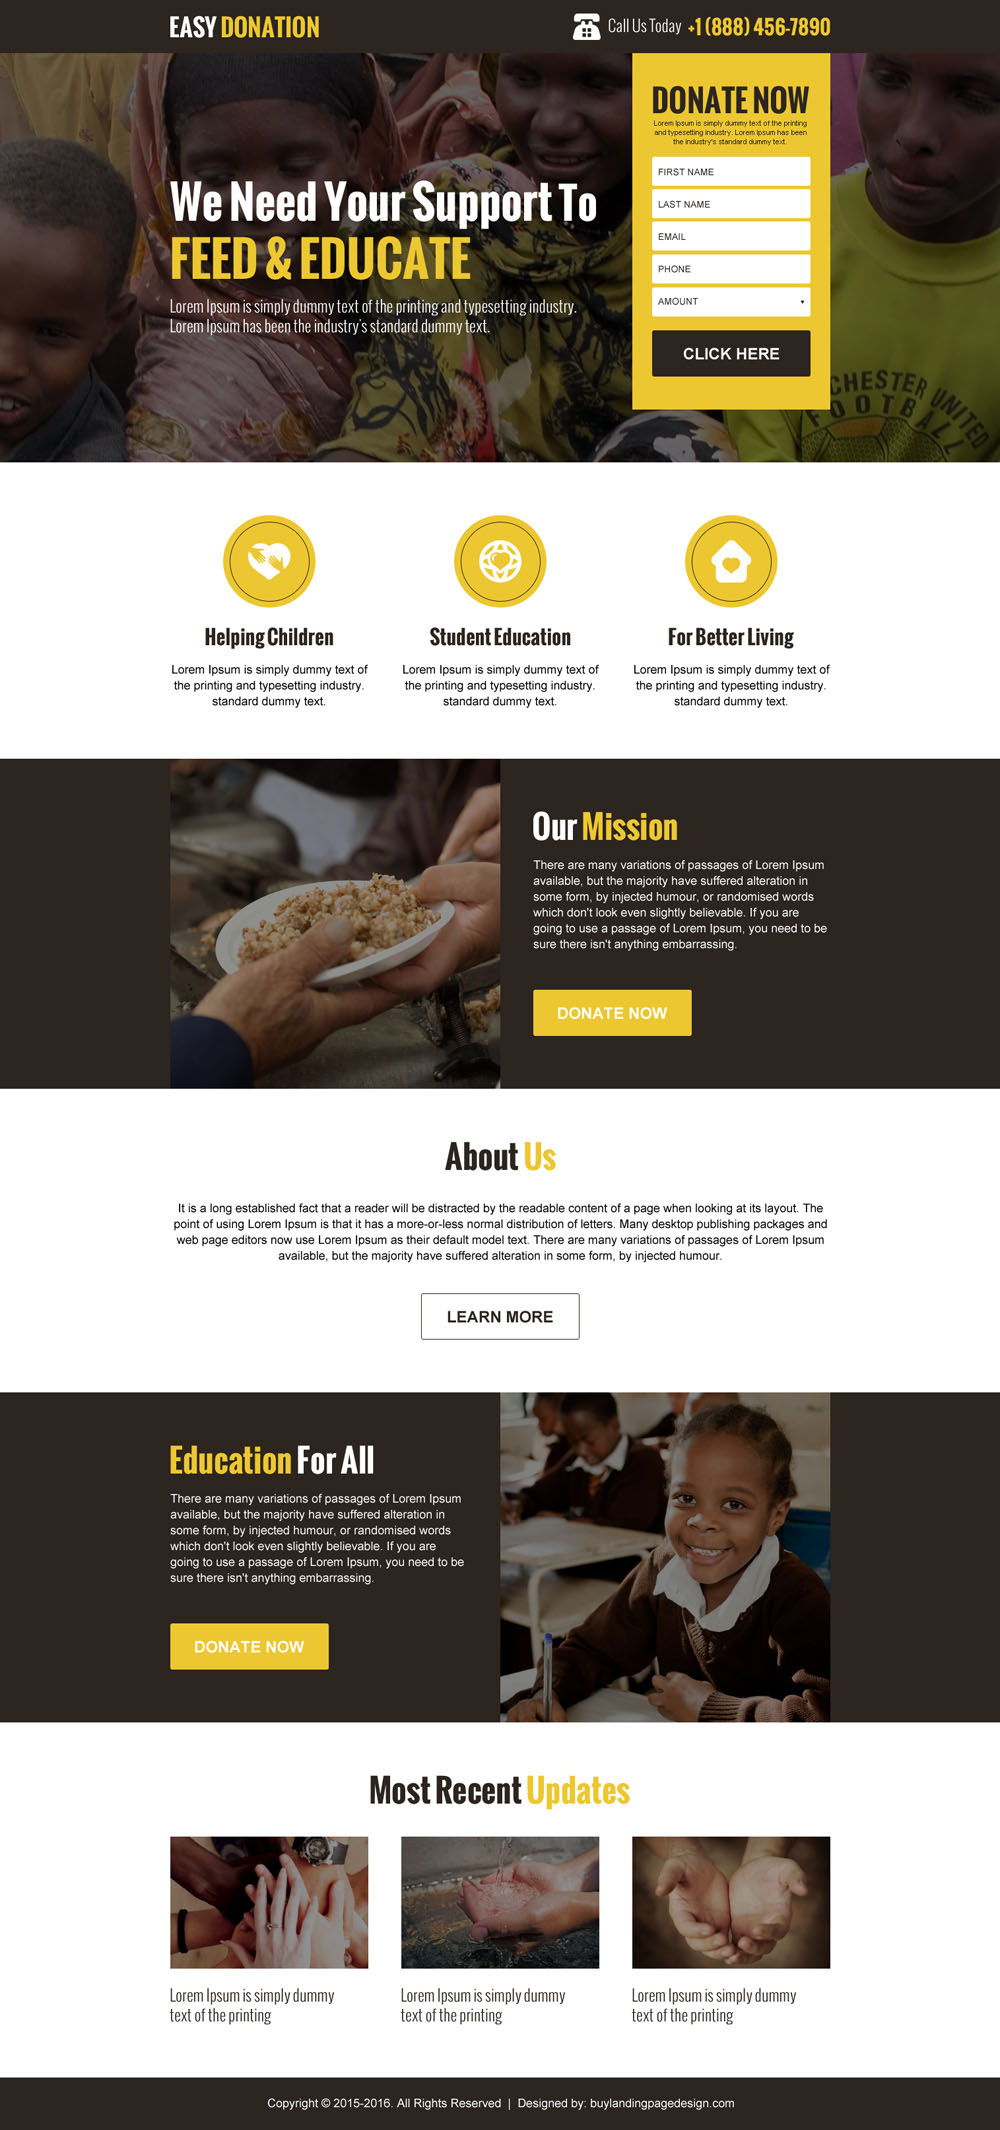 easy-donation-lead-capture-converting-landing-page-design-template-002